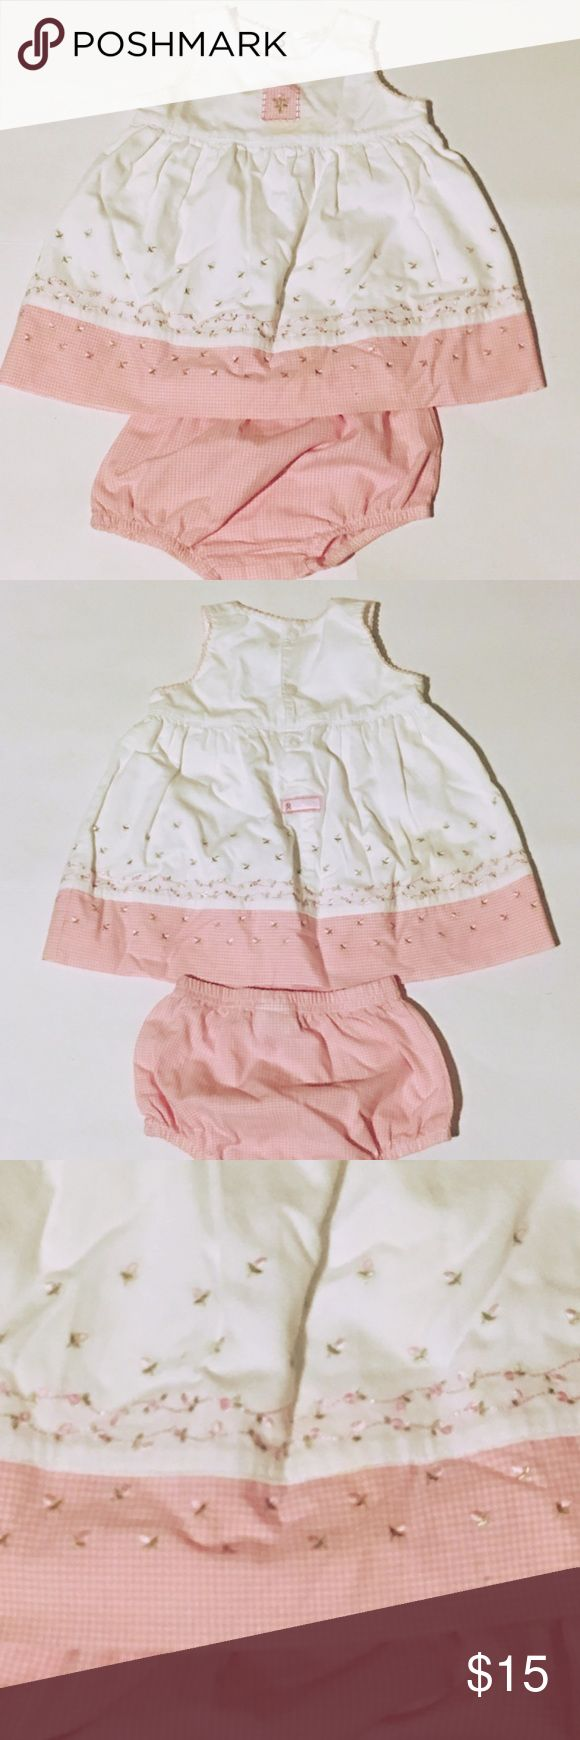 Carter Baby Set Good used condition. Includes matching bloomers Carter's Dresses